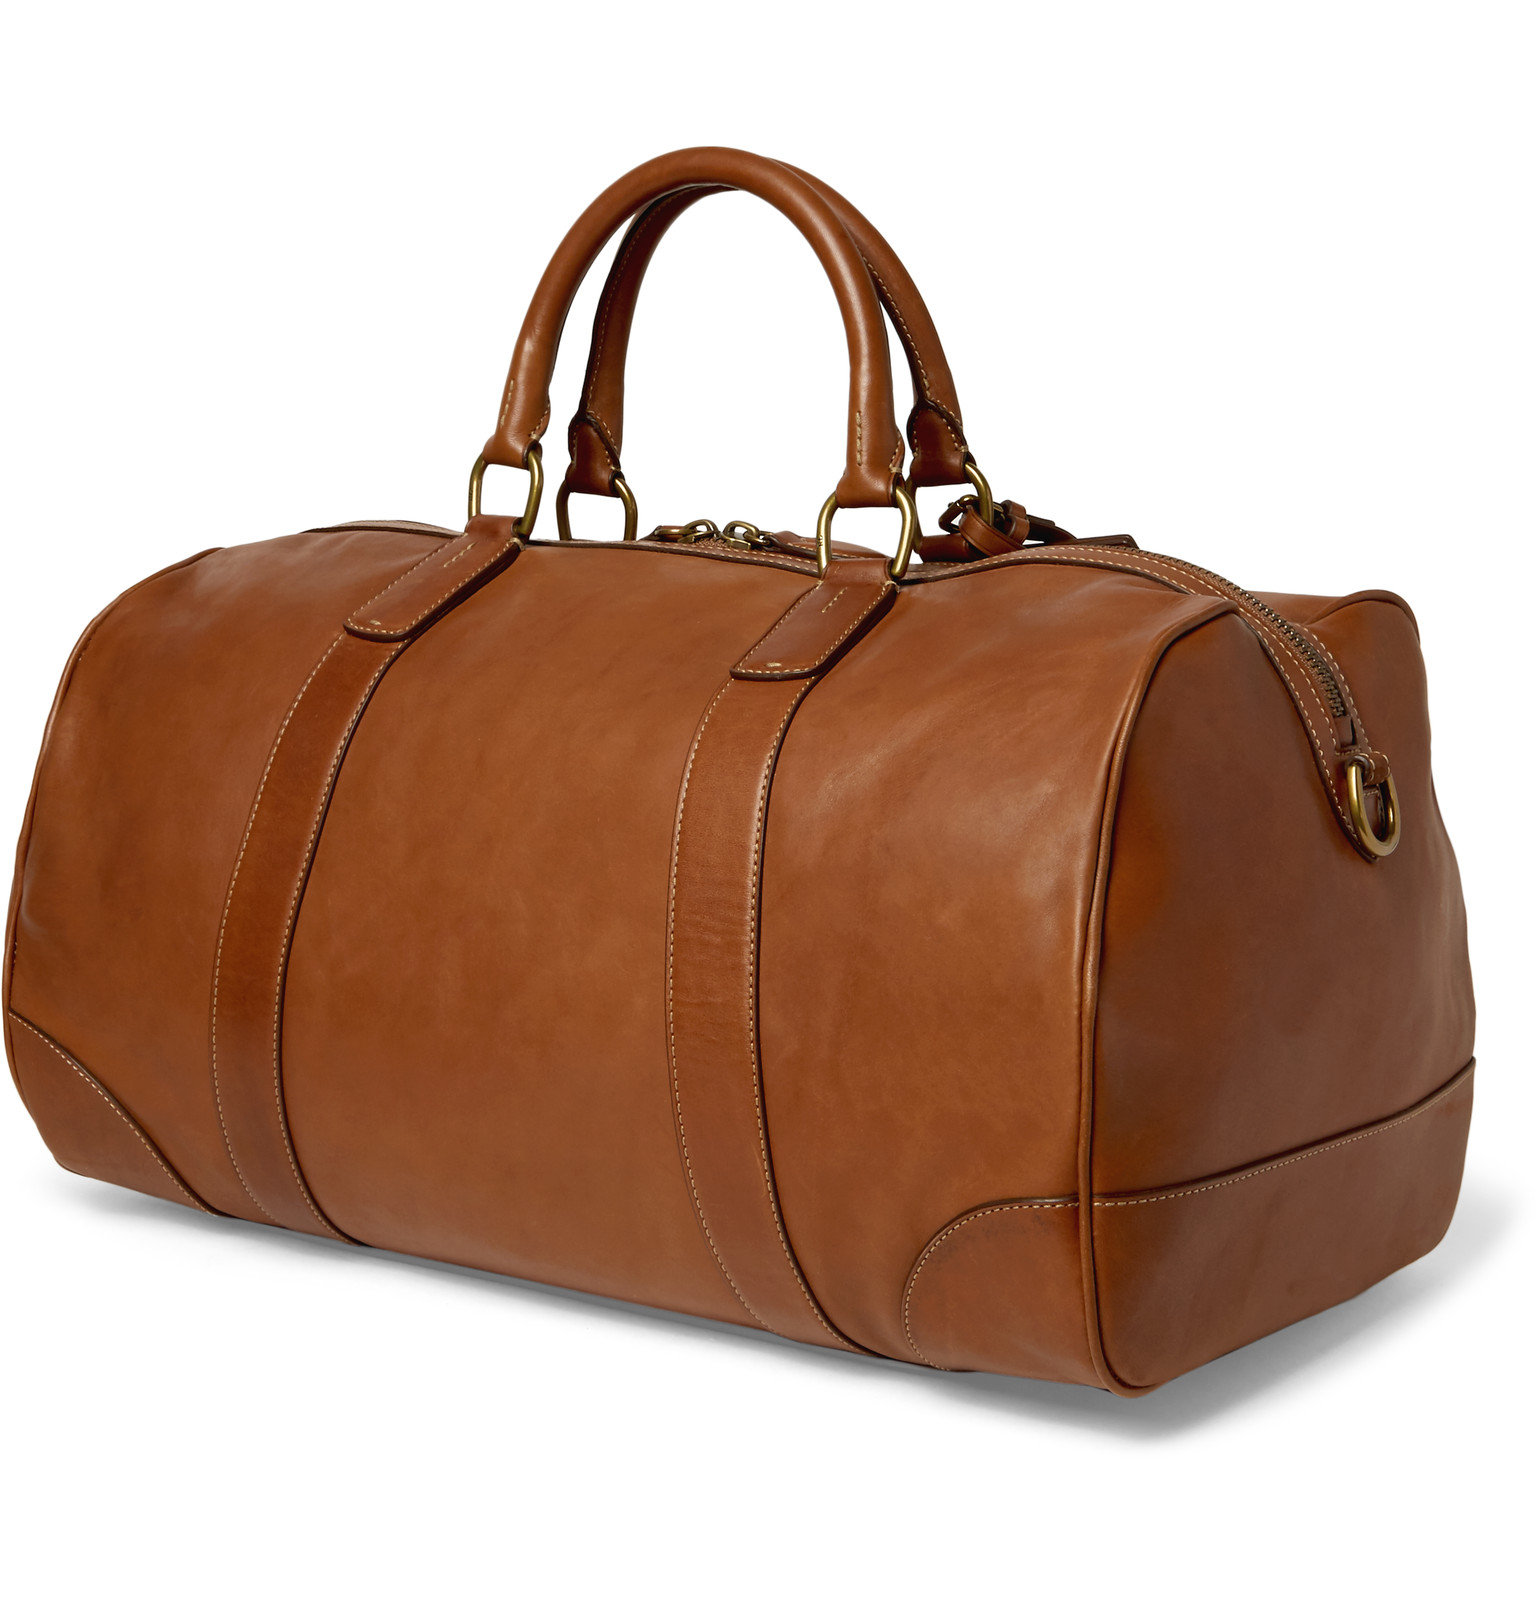 4022ca37f882 Polo Ralph Lauren Leather Duffle Bag in Brown for Men - Lyst